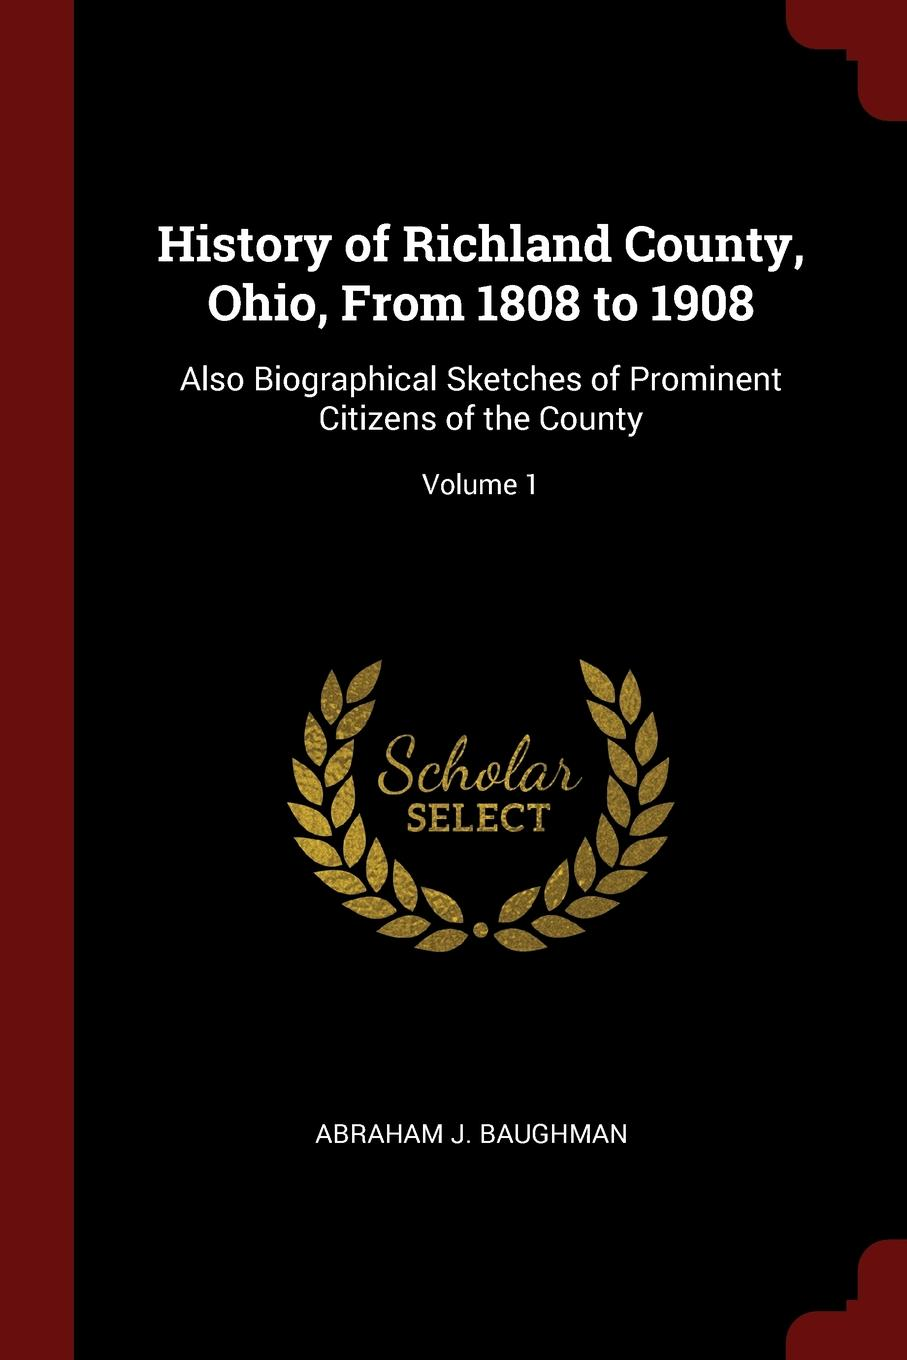 Abraham J. Baughman History of Richland County, Ohio, From 1808 to 1908. Also Biographical Sketches of Prominent Citizens of the County; Volume 1